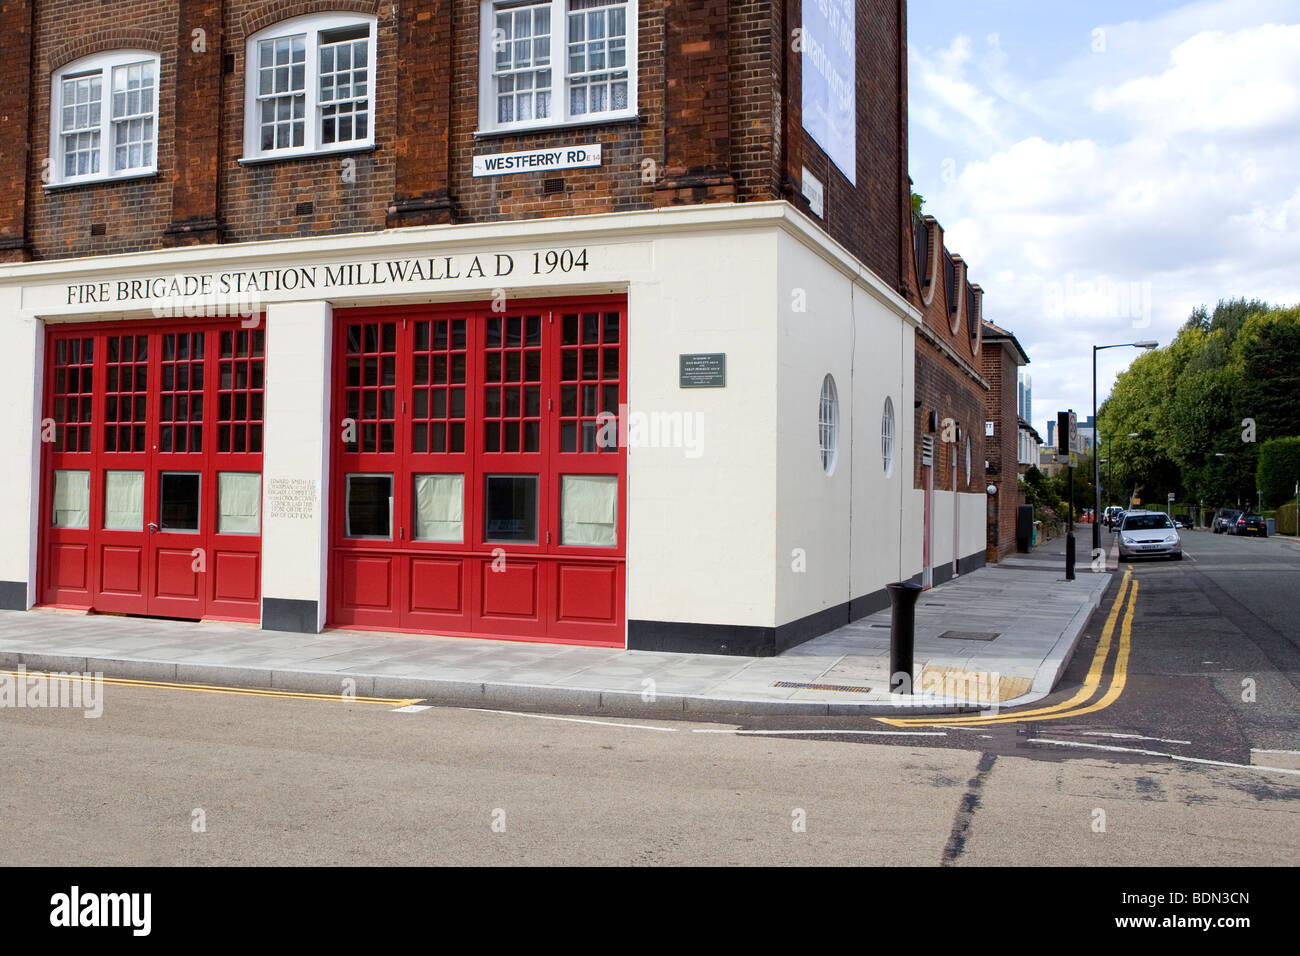 Old Millwall fire station on Westferry Road - Stock Image